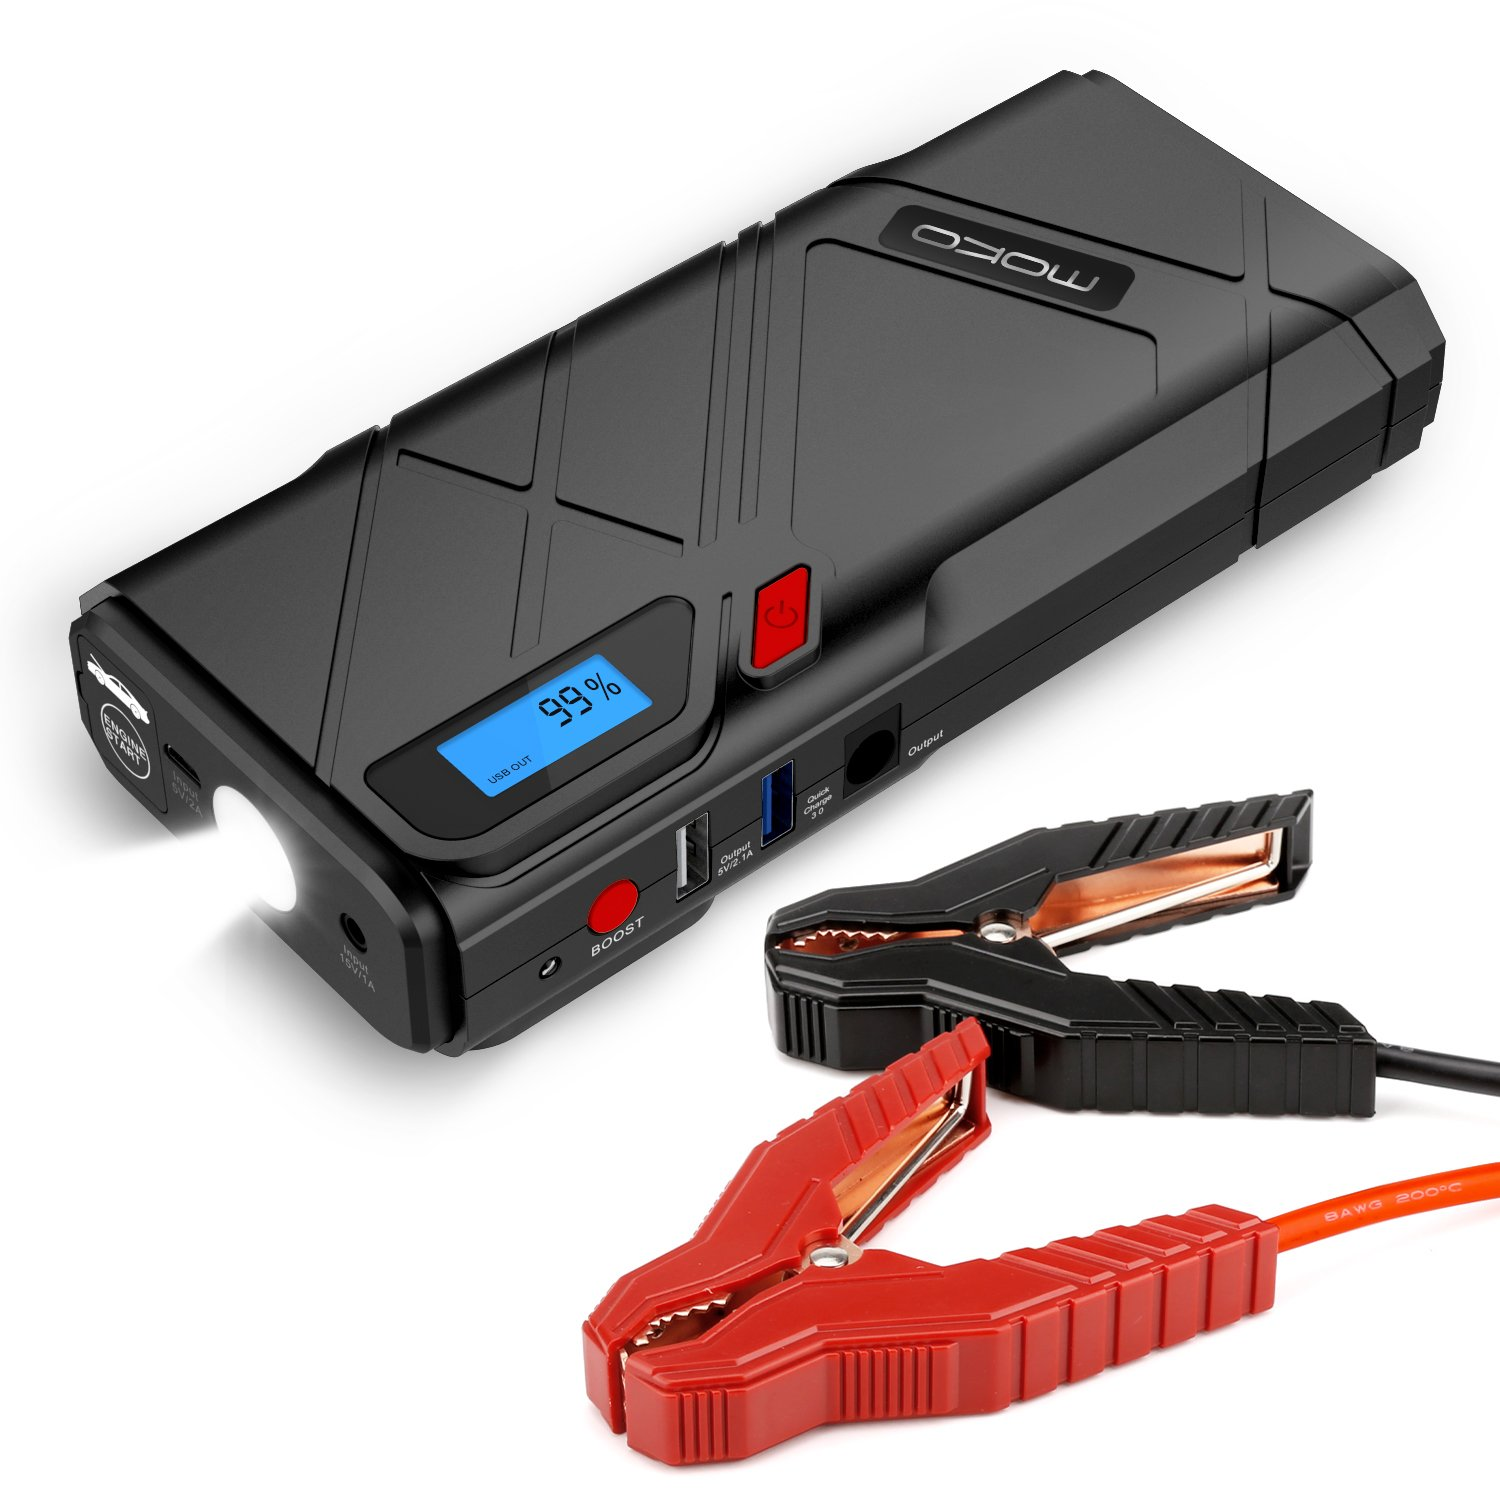 MoKo 1200A Peak Car Jump Starter, 12000mAh Portable Power Bank Battery Booster (Up to 6.5L Gas, 5.2L Diesel Engine), with 2 USB Ports, QC3.0 Fast Charging and Emergency LED Flashlight - Red